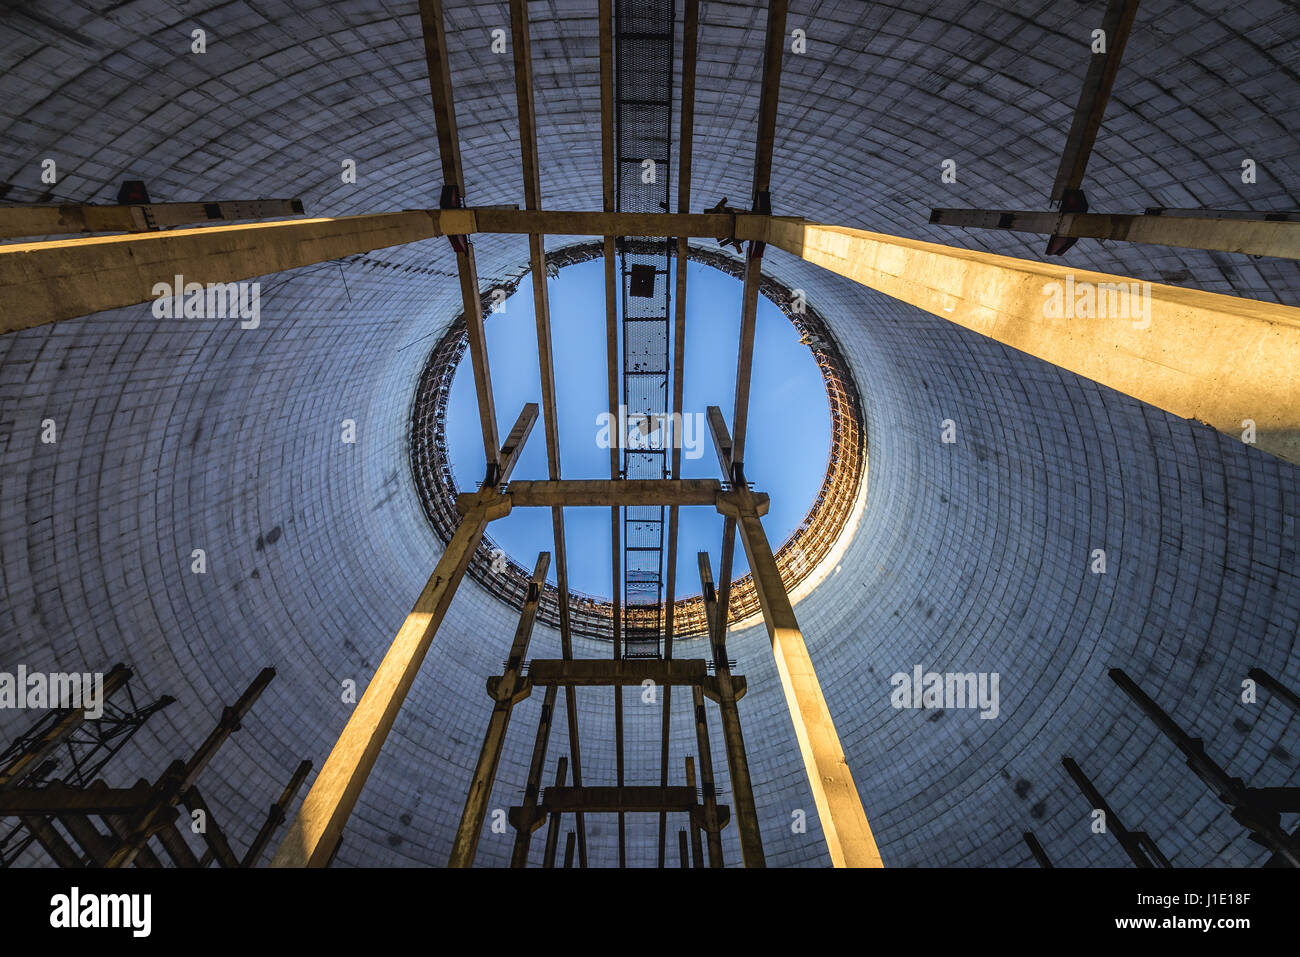 Inside The Cooling Tower Of Chernobyl Nuclear Power Plant In Zone Of